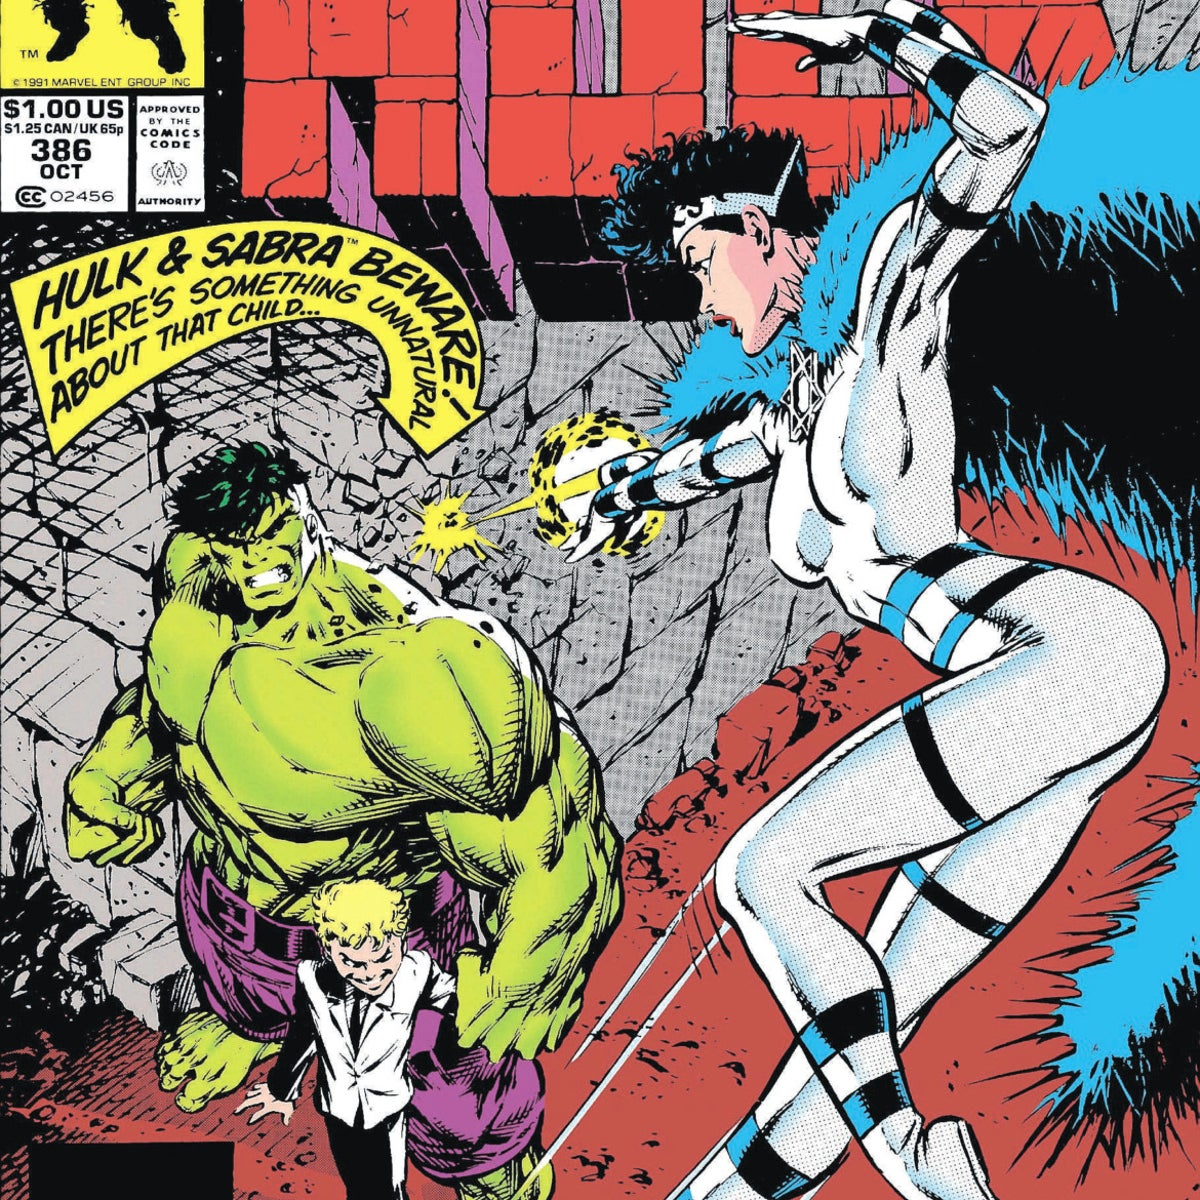 """Sabra on the cover of """"The Incredible Hulk,"""" issue 386, October 1991"""